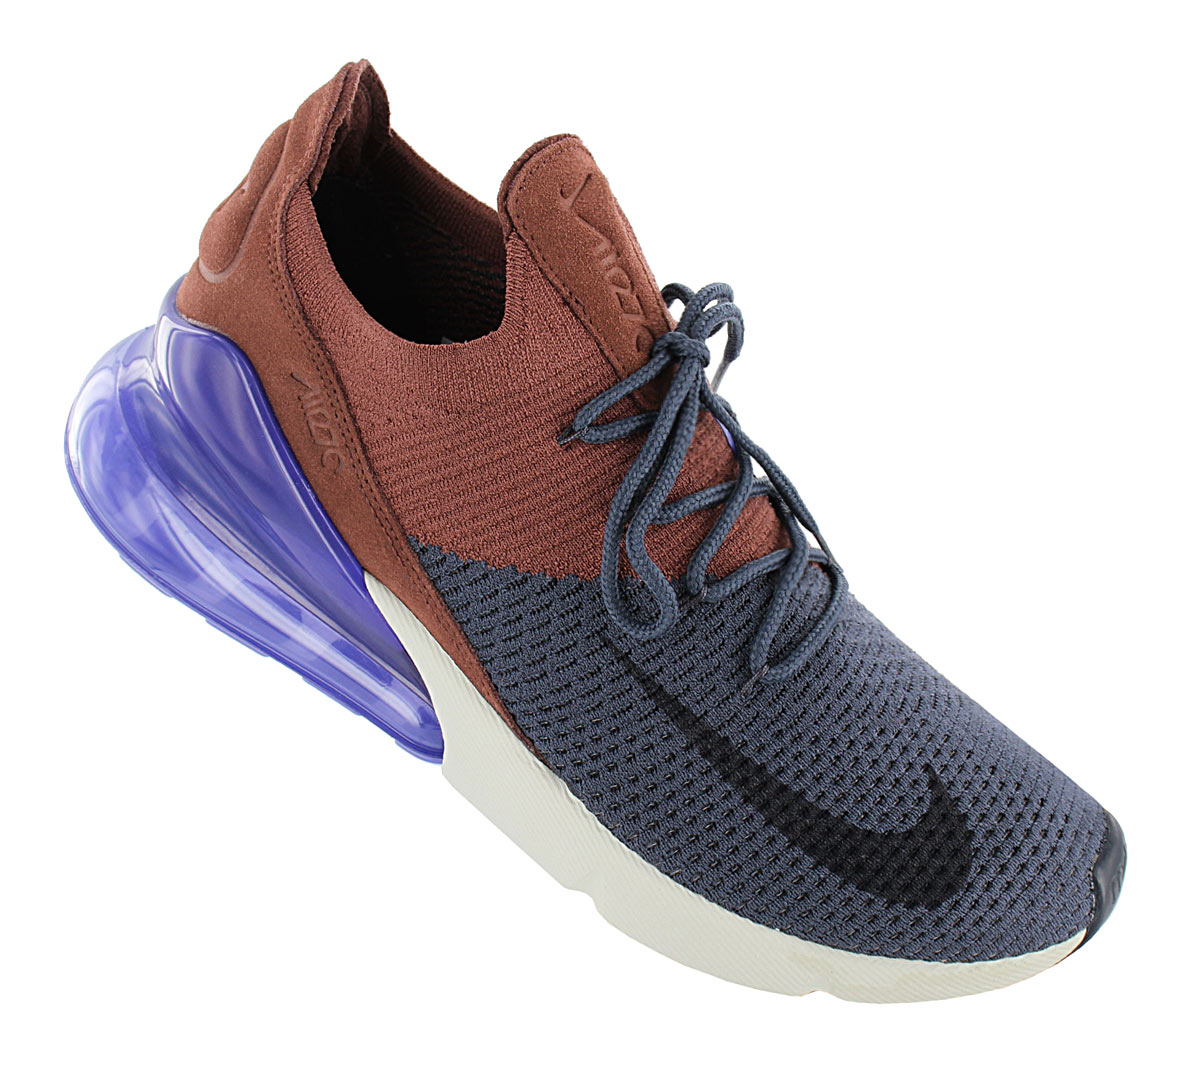 Details about Nike air max 270 Flyknit Men's Sneaker AO1023 402 Blue Brown Shoes Sneakers